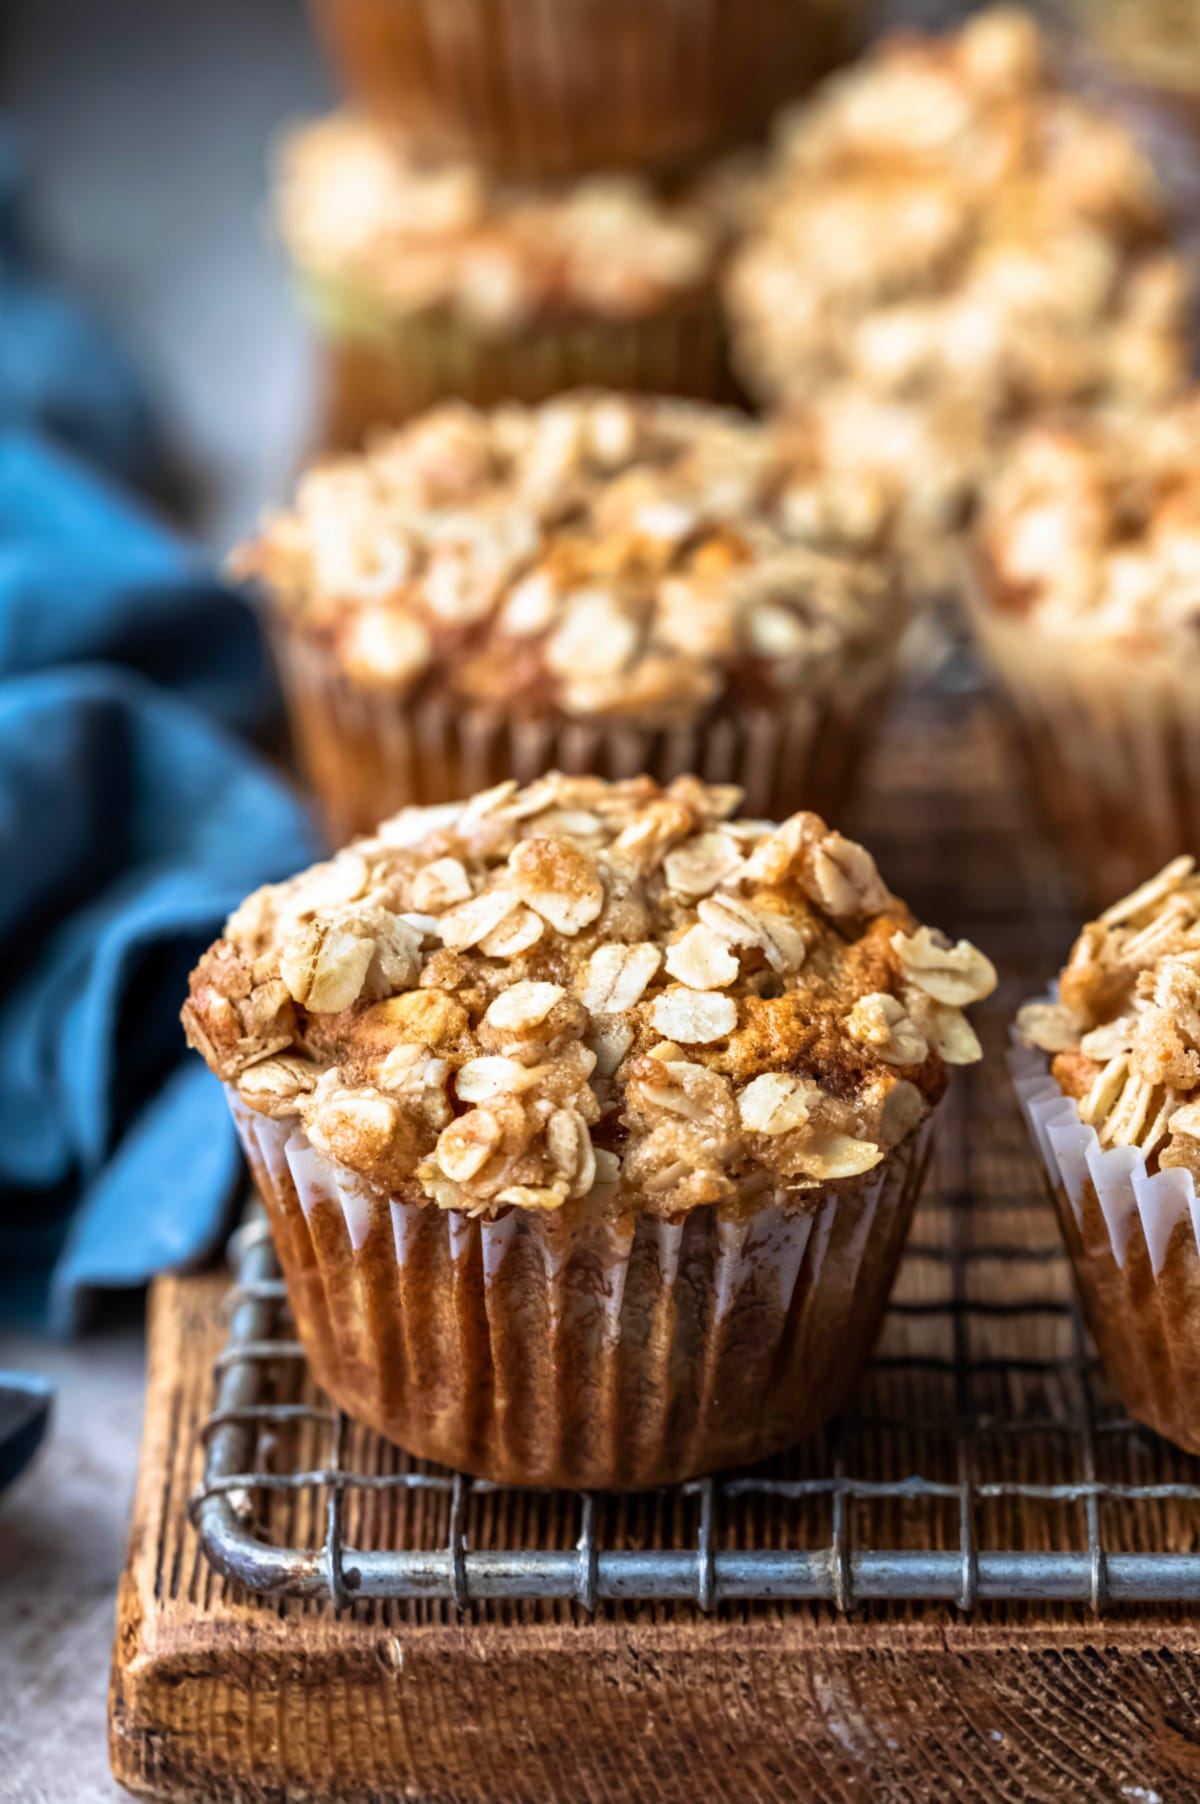 Row of banana oatmeal muffins next to a blue linen napkin